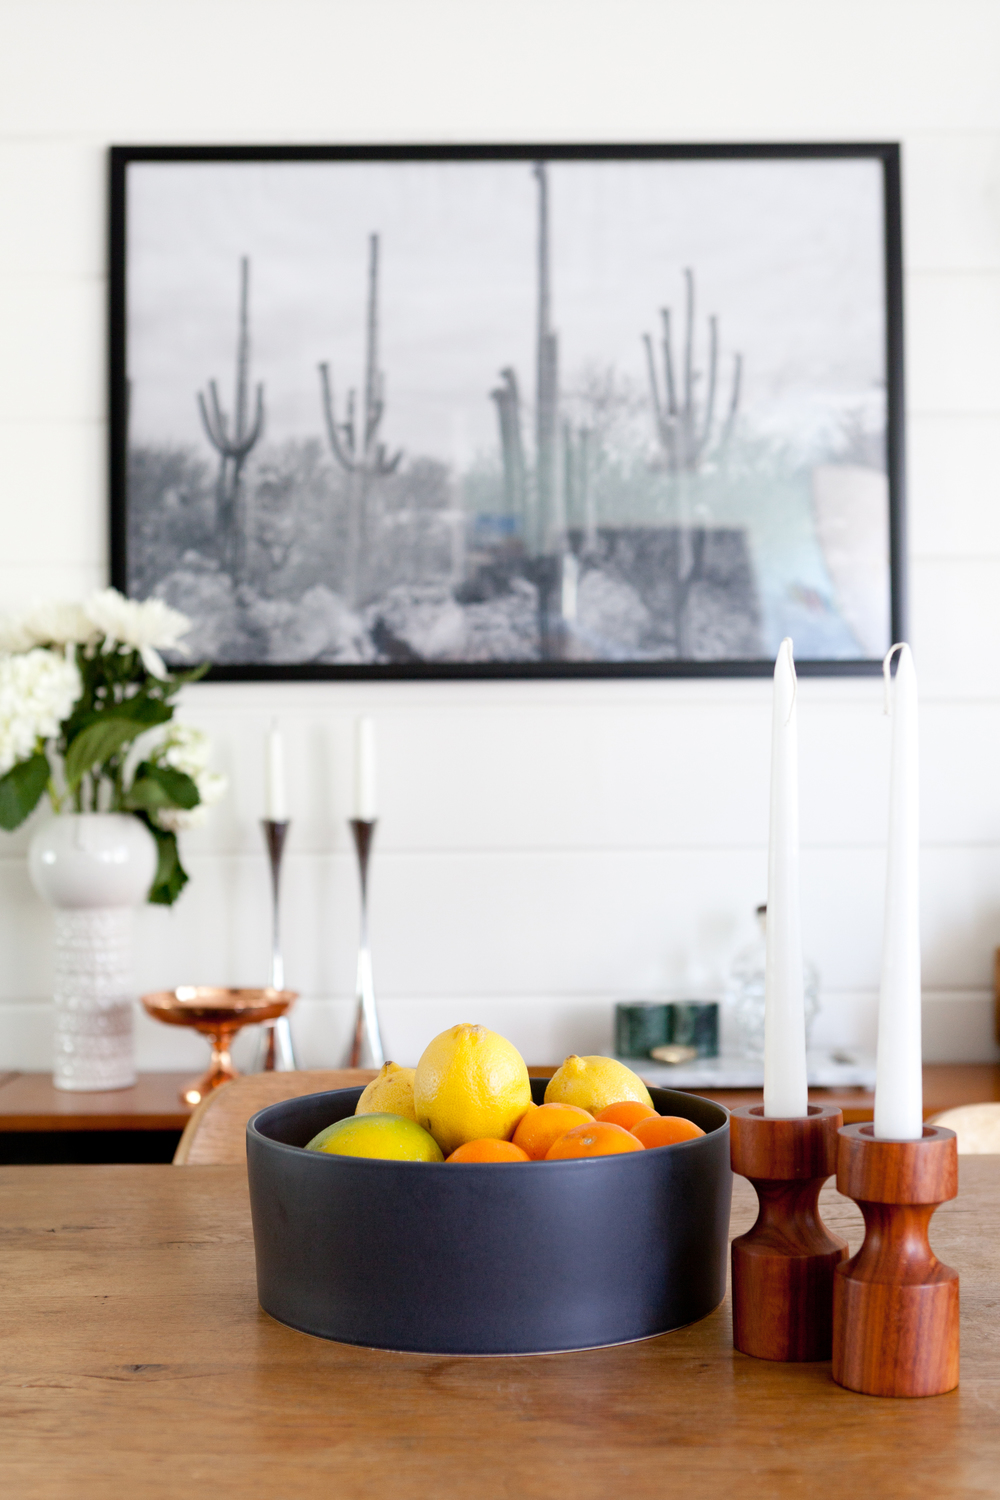 The inexpensive print by  Fine Life Co  truly captures the laid back spirit of my dining area.